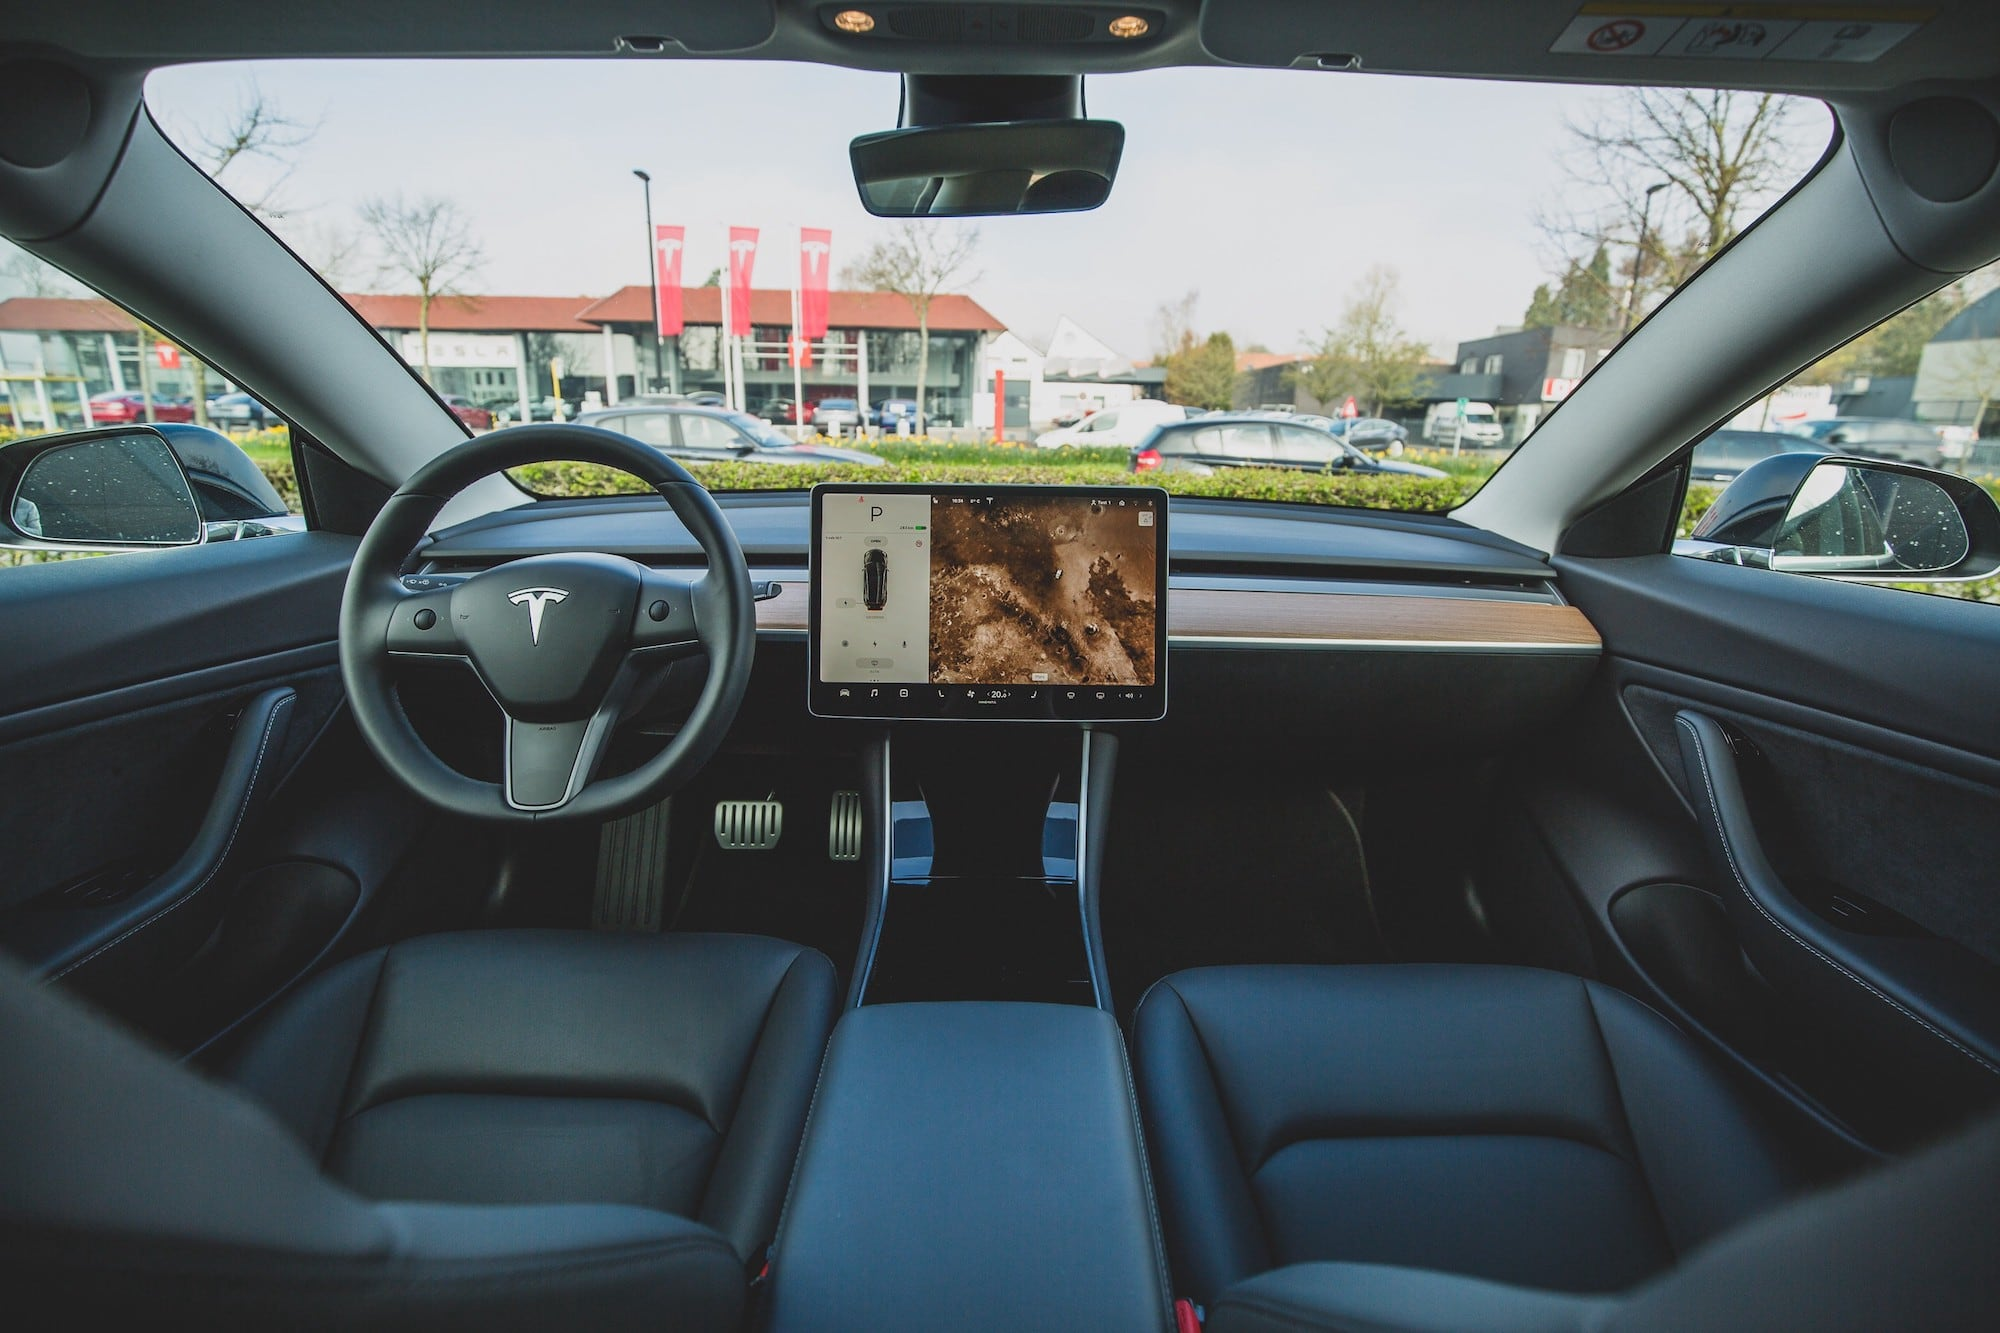 Where we are with self-driving cars in 2020?